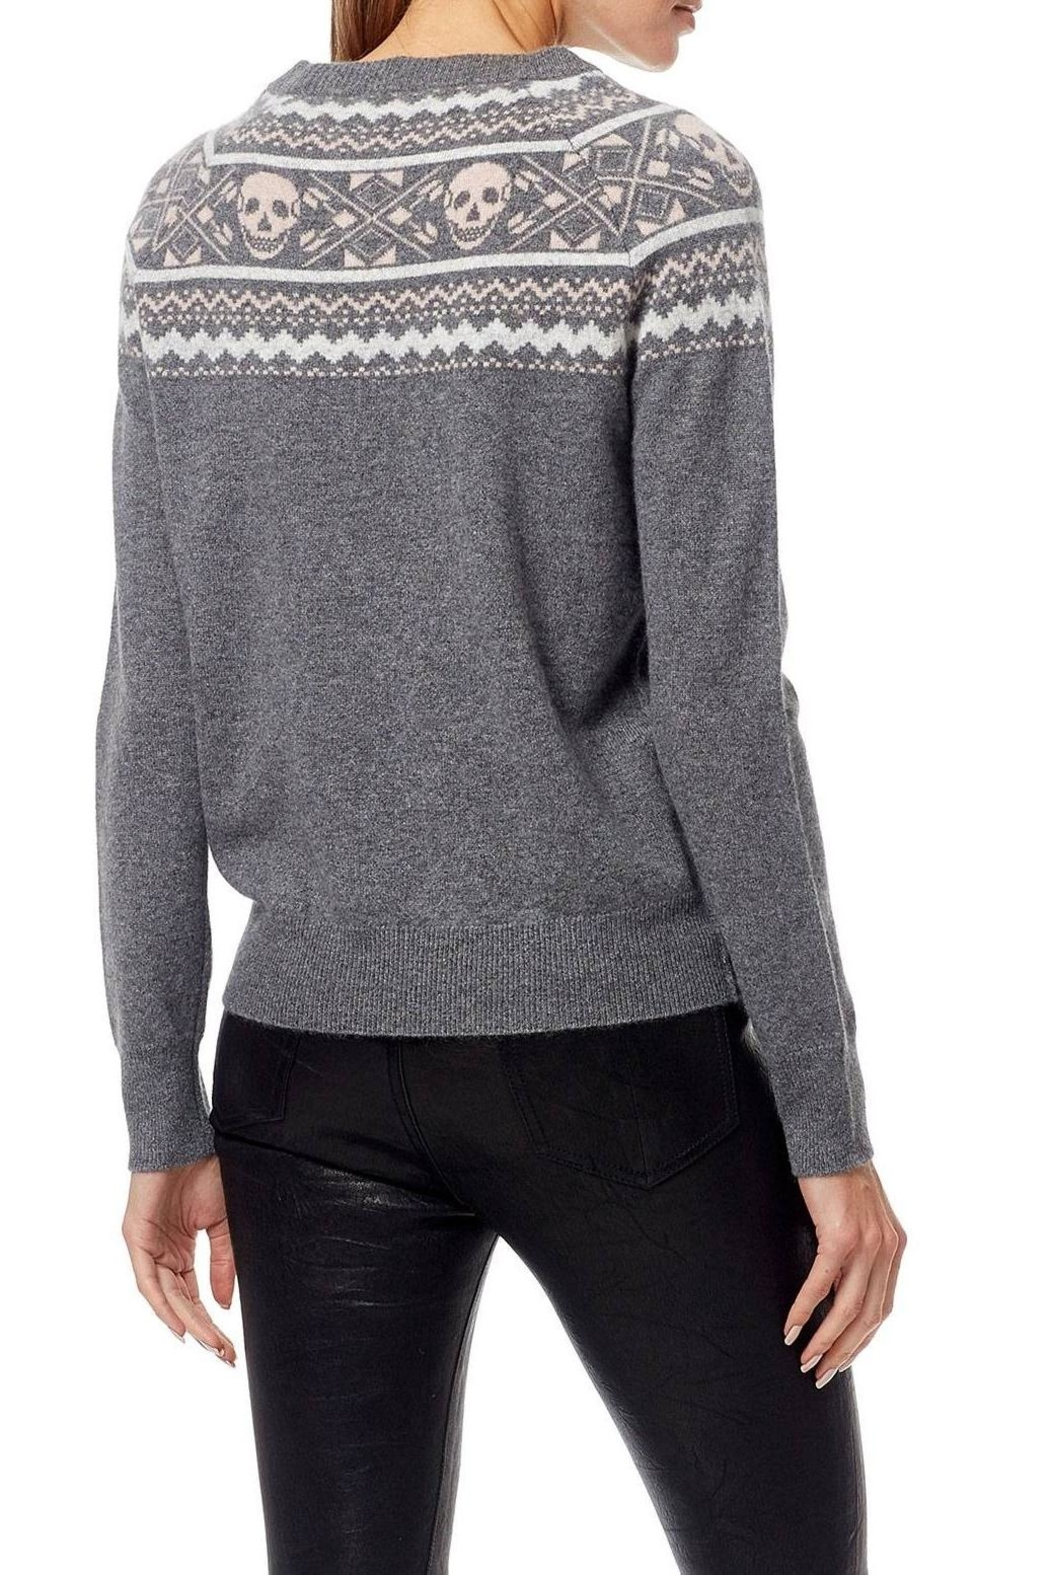 Skull Cashmere Cashmere Miley Sweater - Side Cropped Image